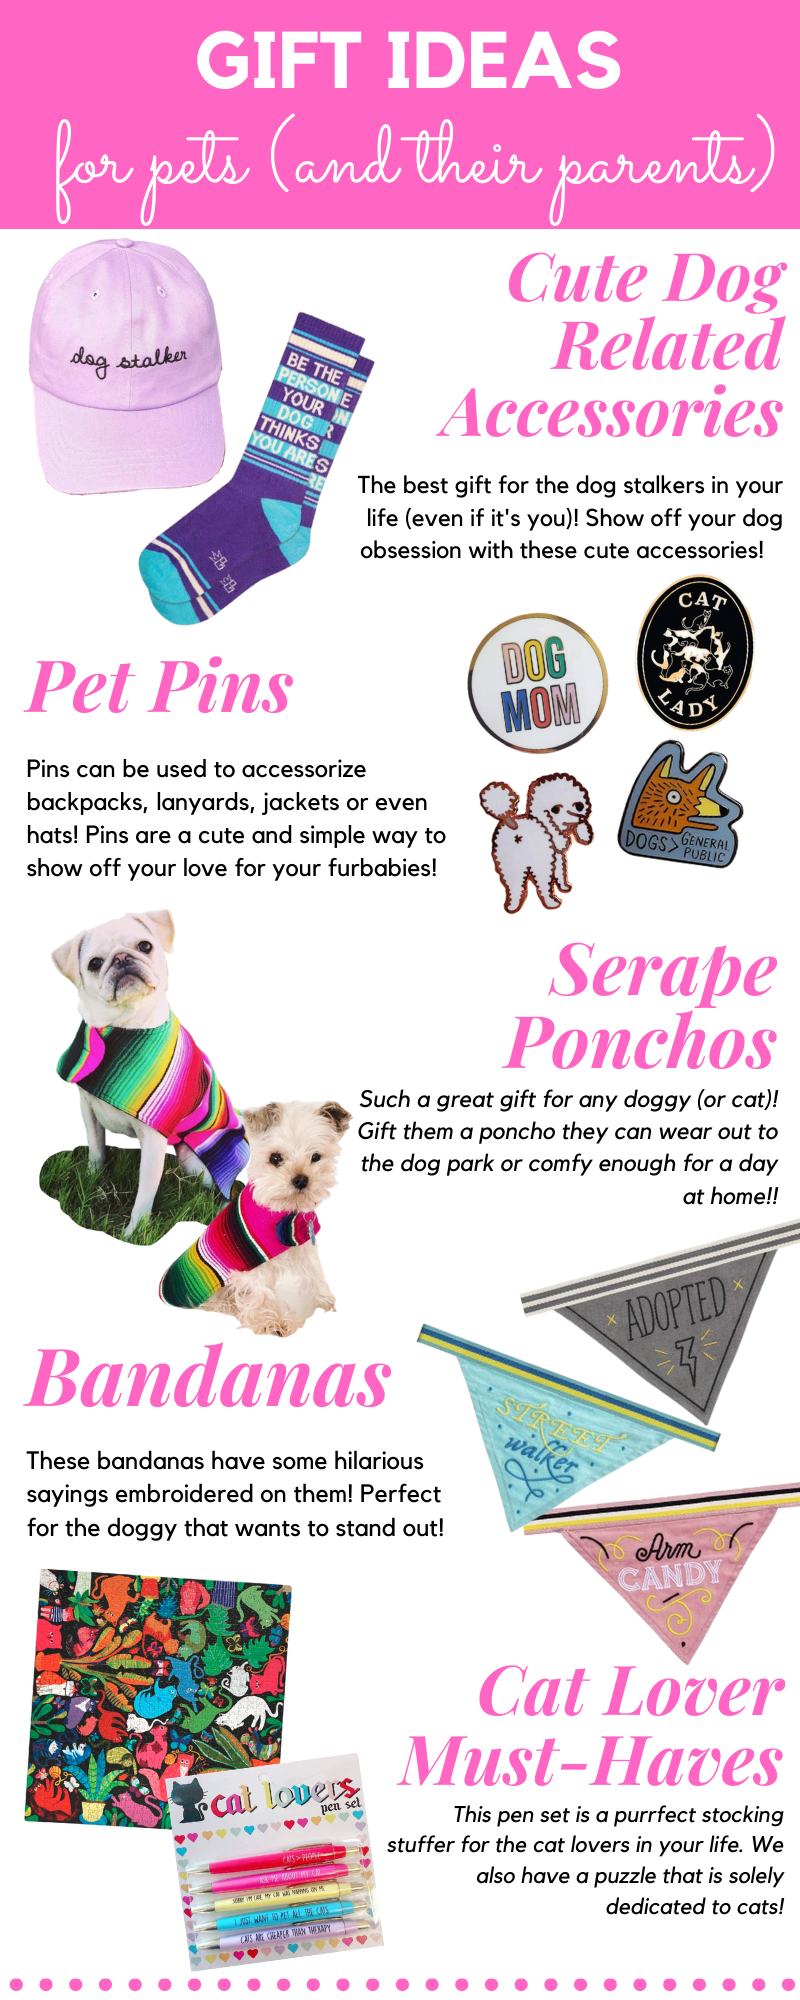 Gift Guide for Pets and Their Parents